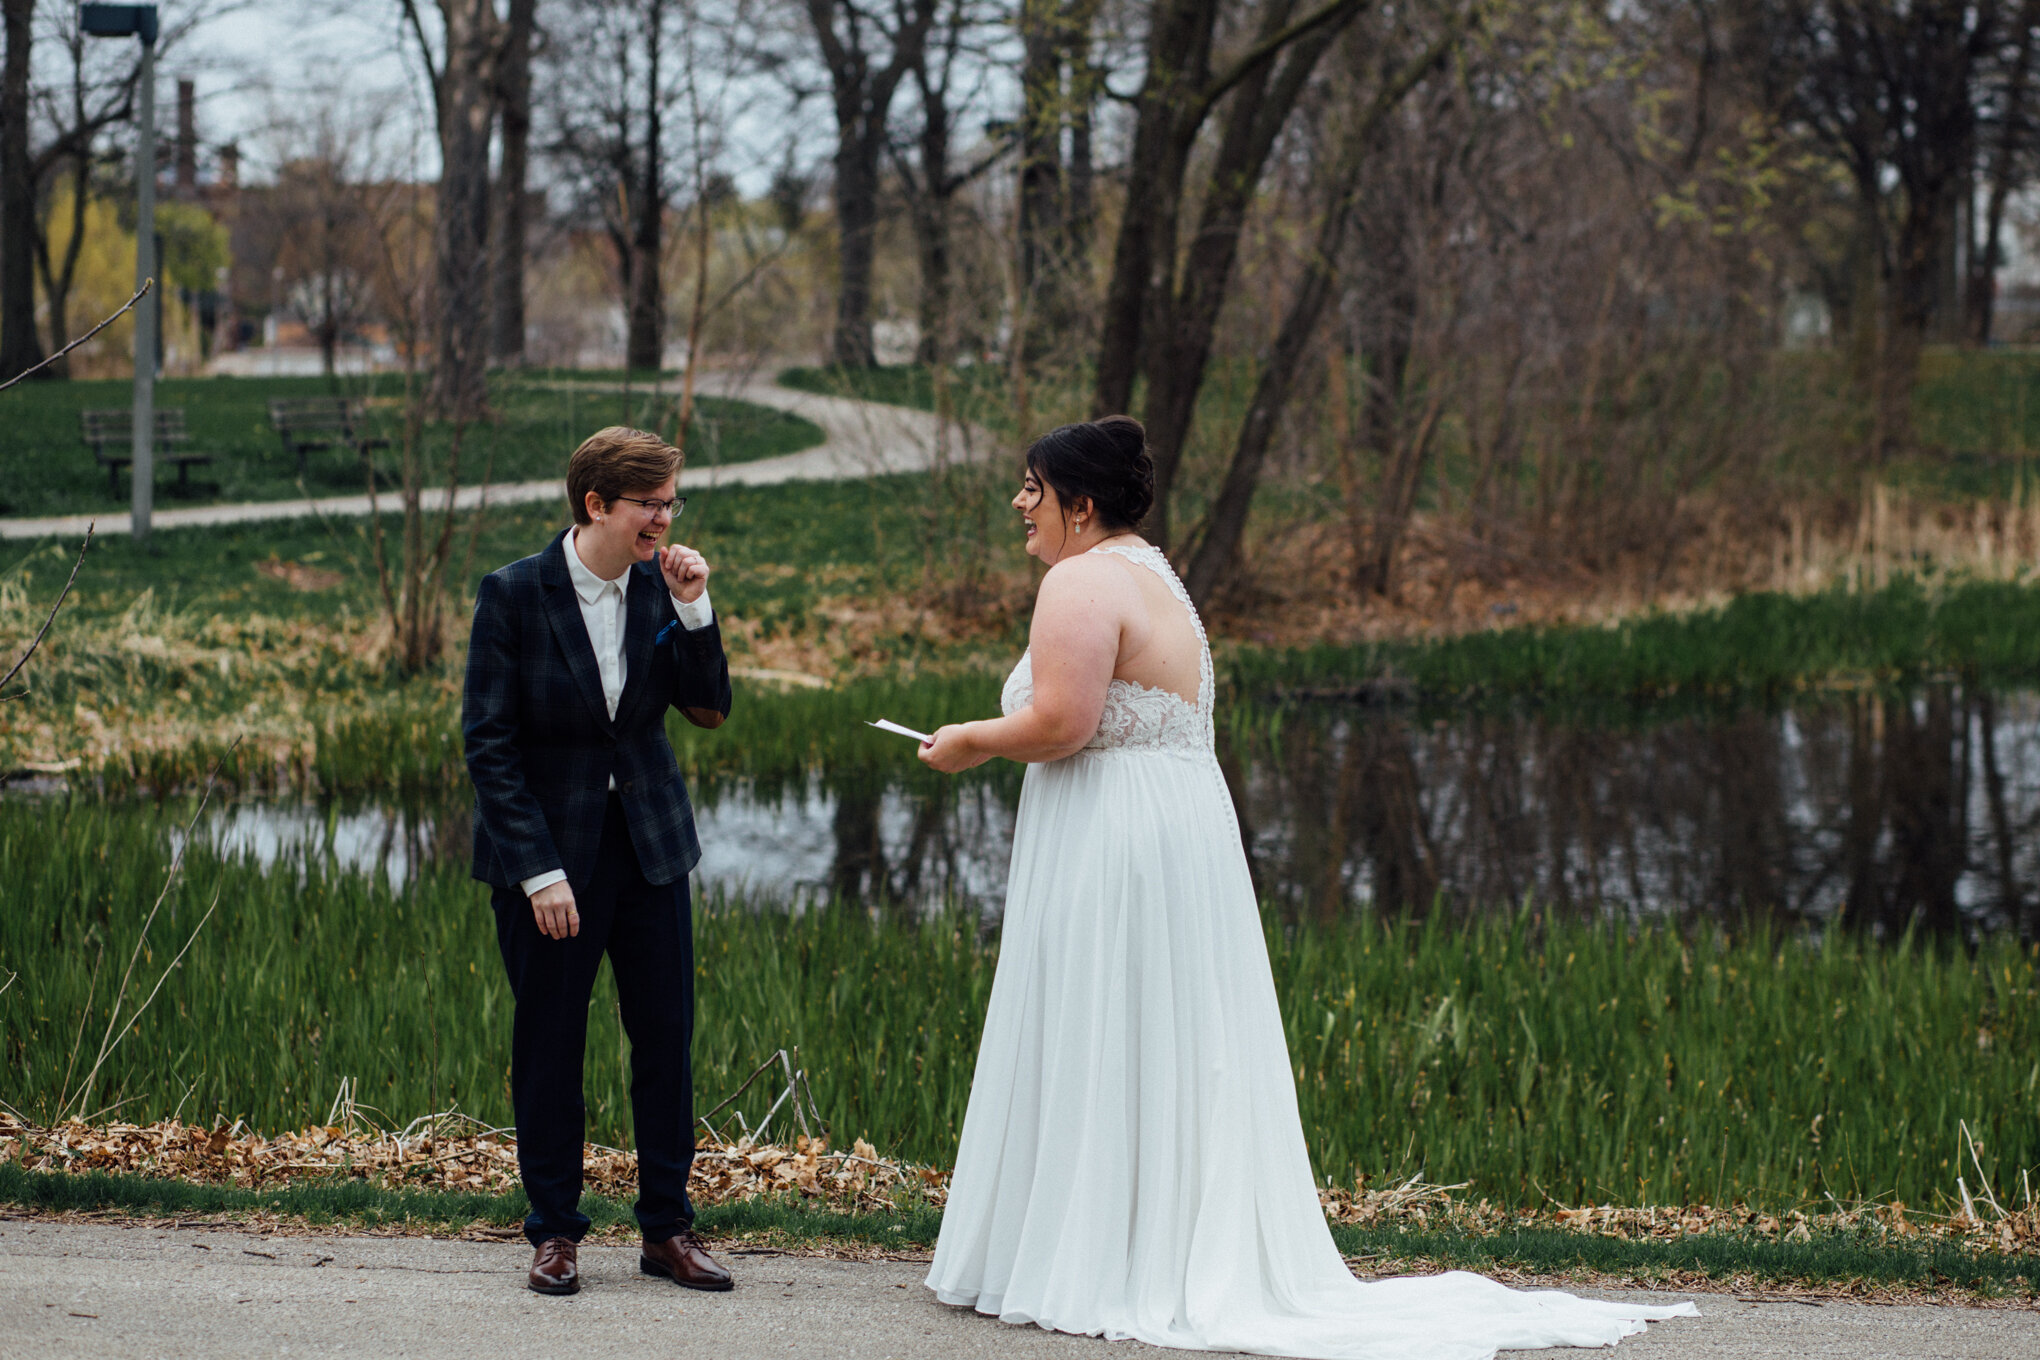 brides-laughing-exchanging-vows-during-first-look-at-humboldt-park.jpg